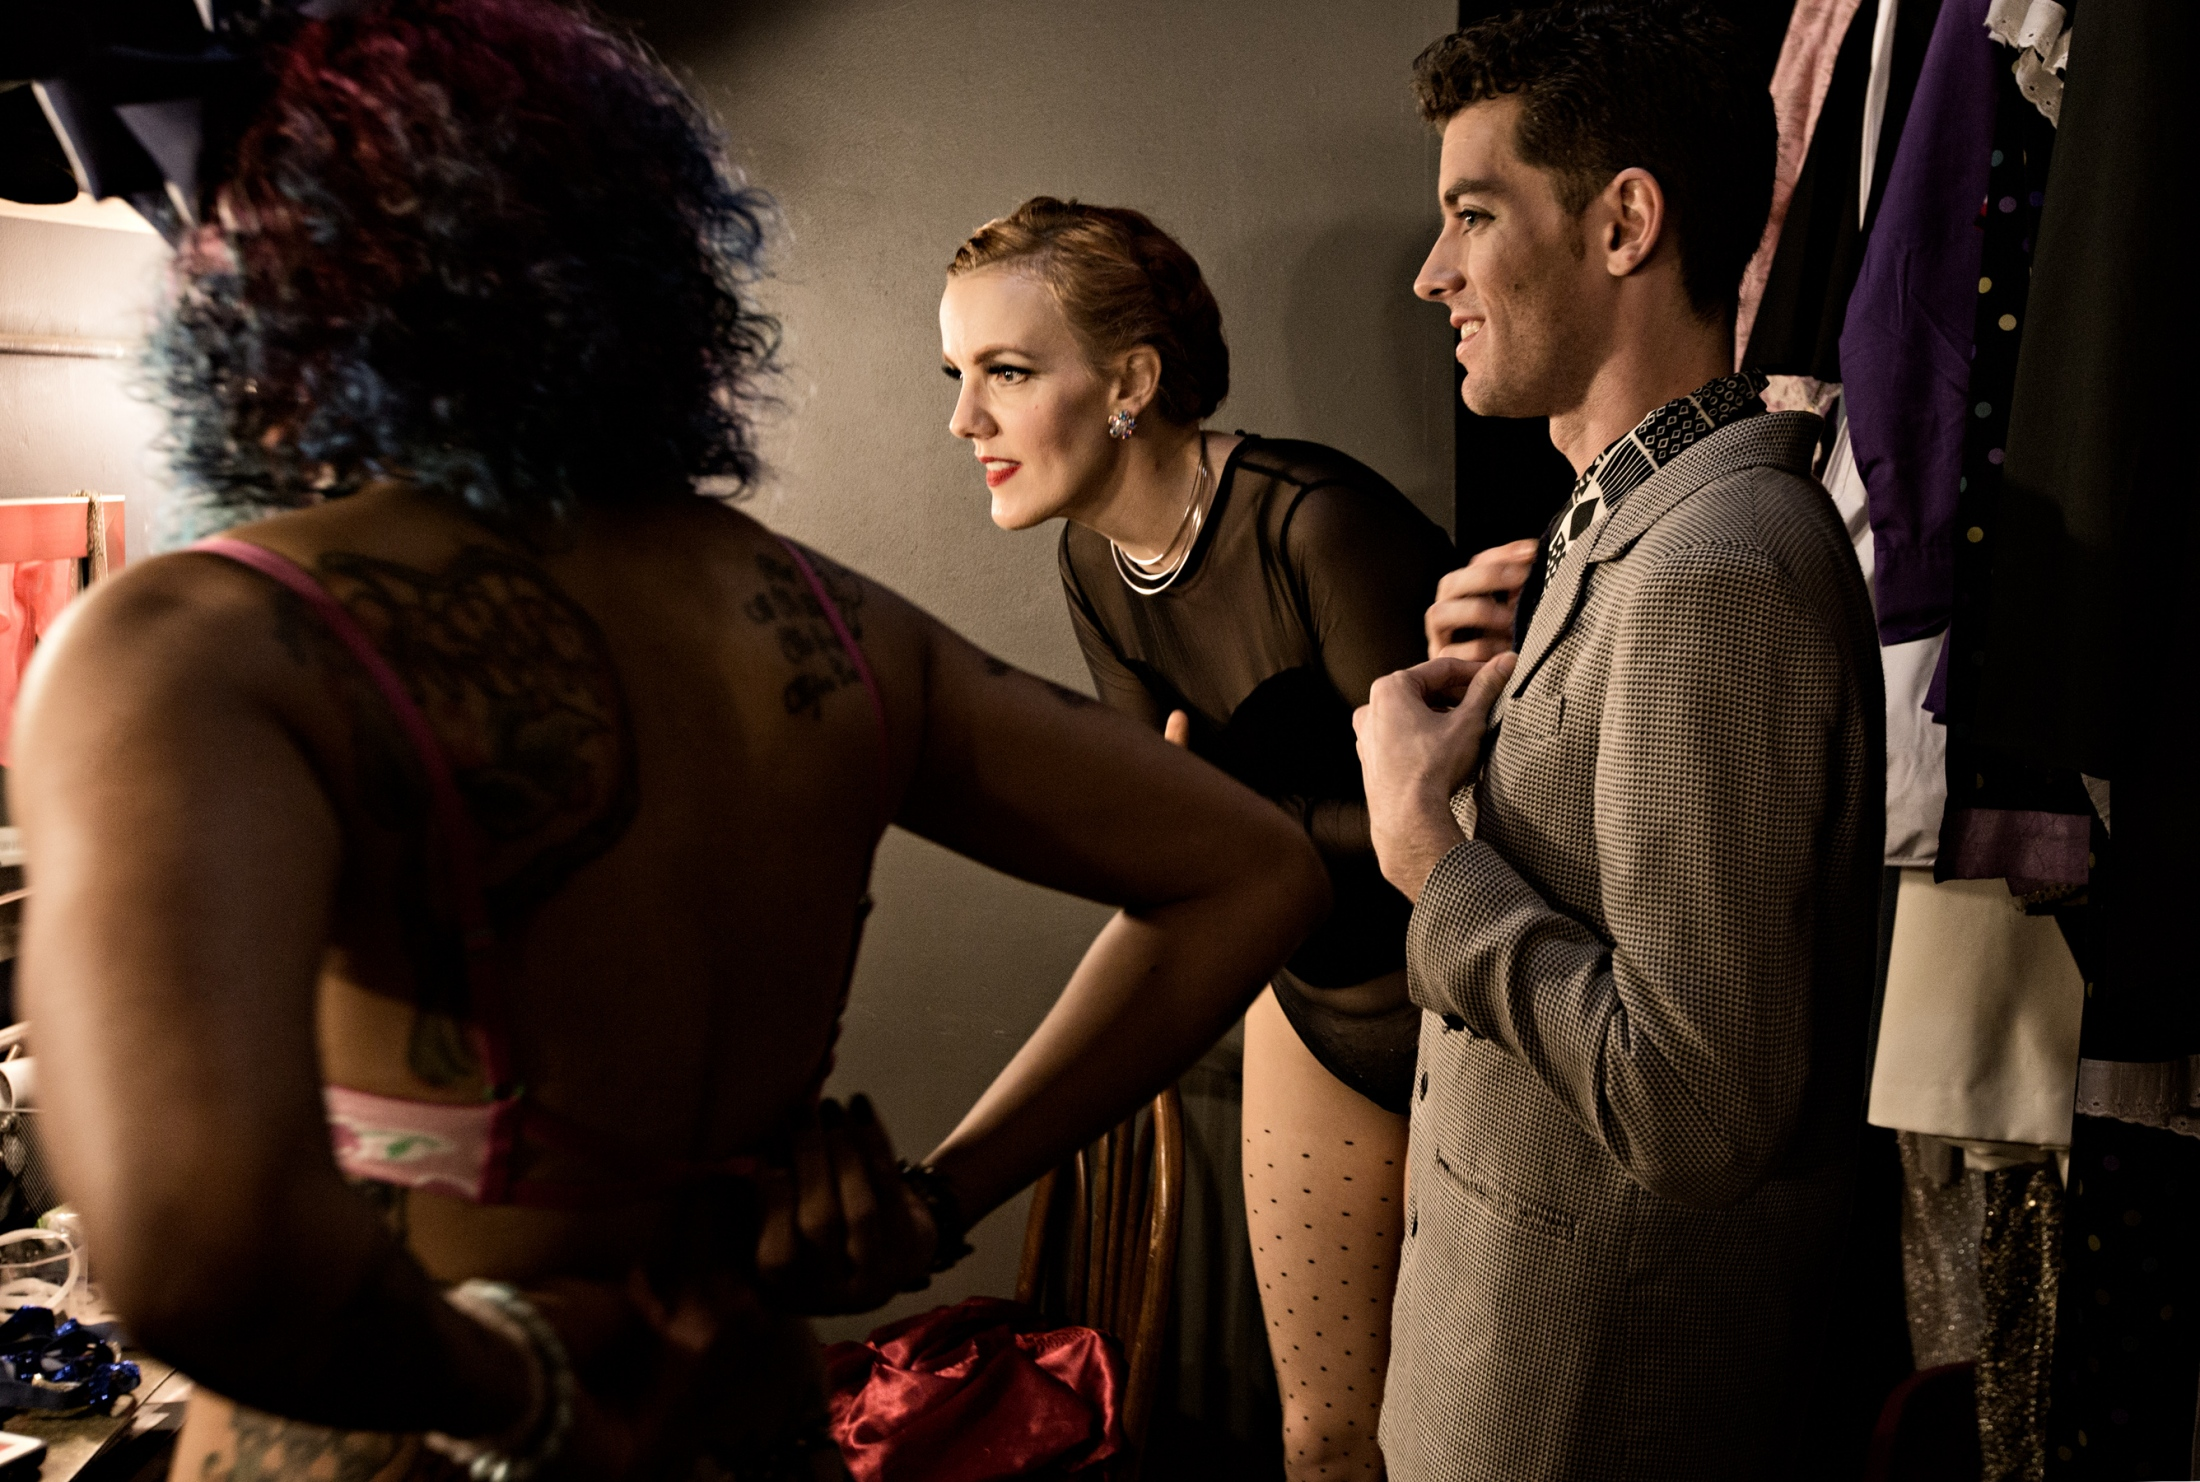 Zara Estelle, Red Hot Annie and Dirty Devlin check each others' outfit and makeup before their performance. There are a lot of lighthearted moments backstage and Vaudezilla members joke with one another. Laughter and good-nature chatter is a generally part of the background noise as the members prepare to take the stage.